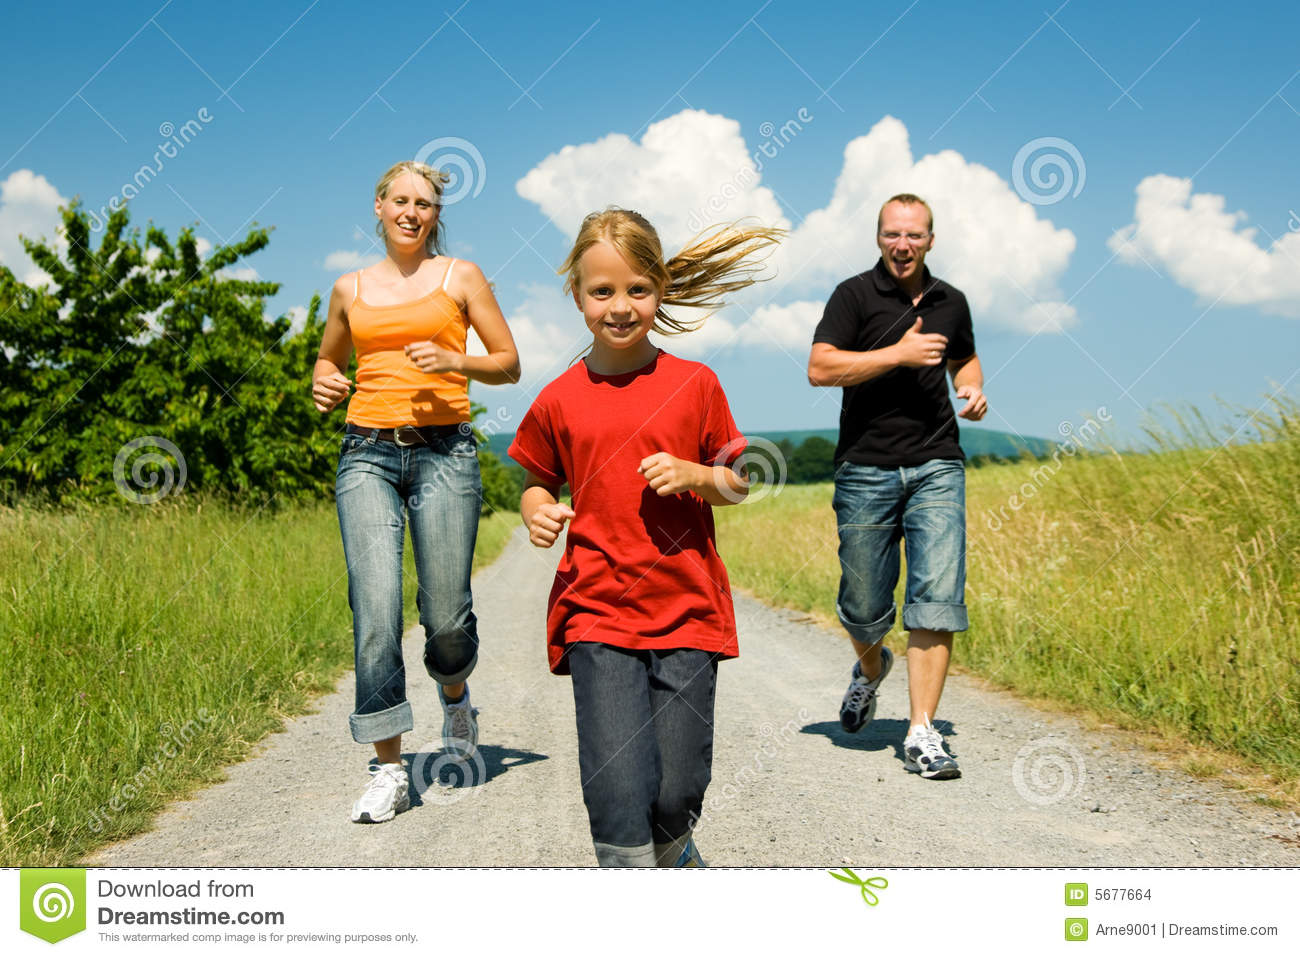 short essay on physical fitness Obesity and physical fitness persuasive speech obesity and physical fitness obesity is becoming a problem in our country on an epidemic level.